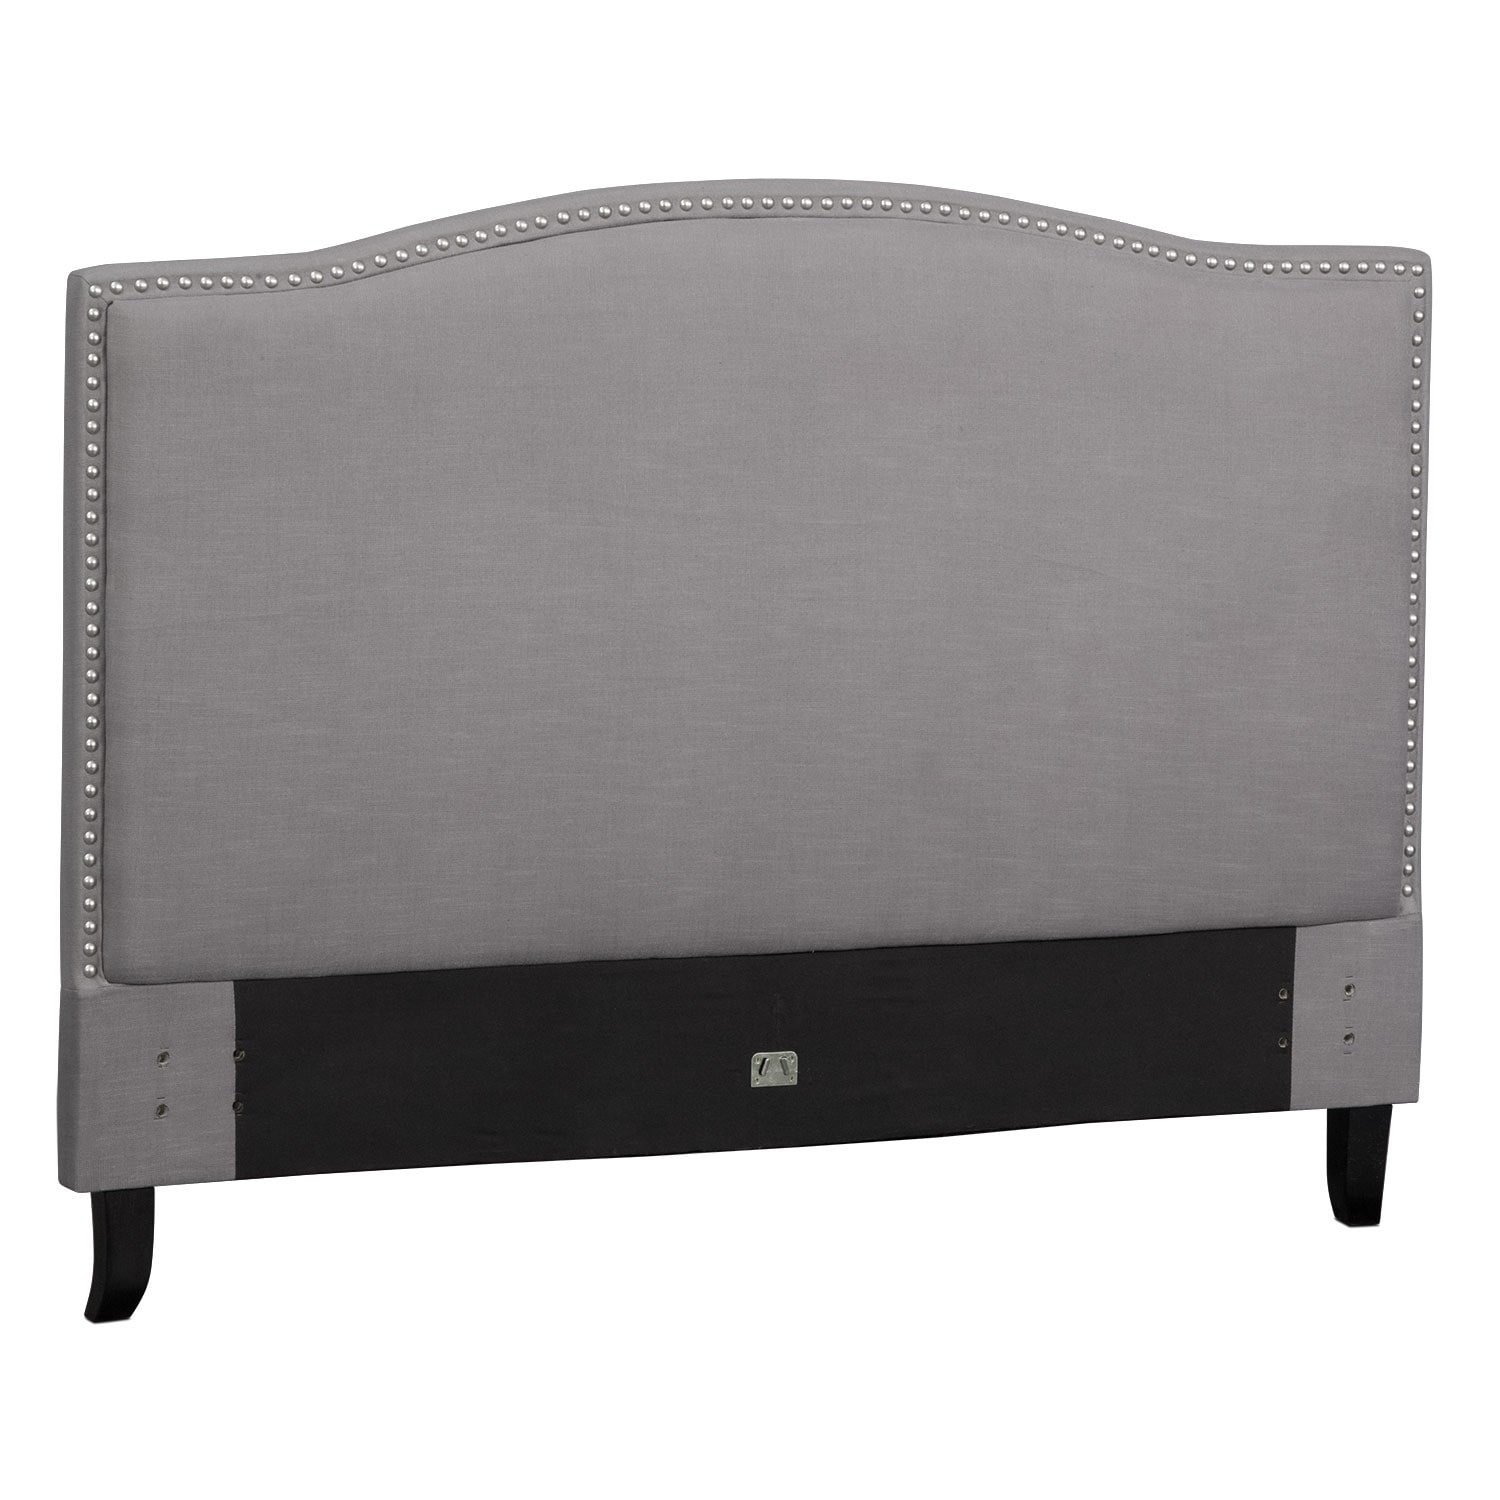 Aubrey King Upholstered Headboard - Gray